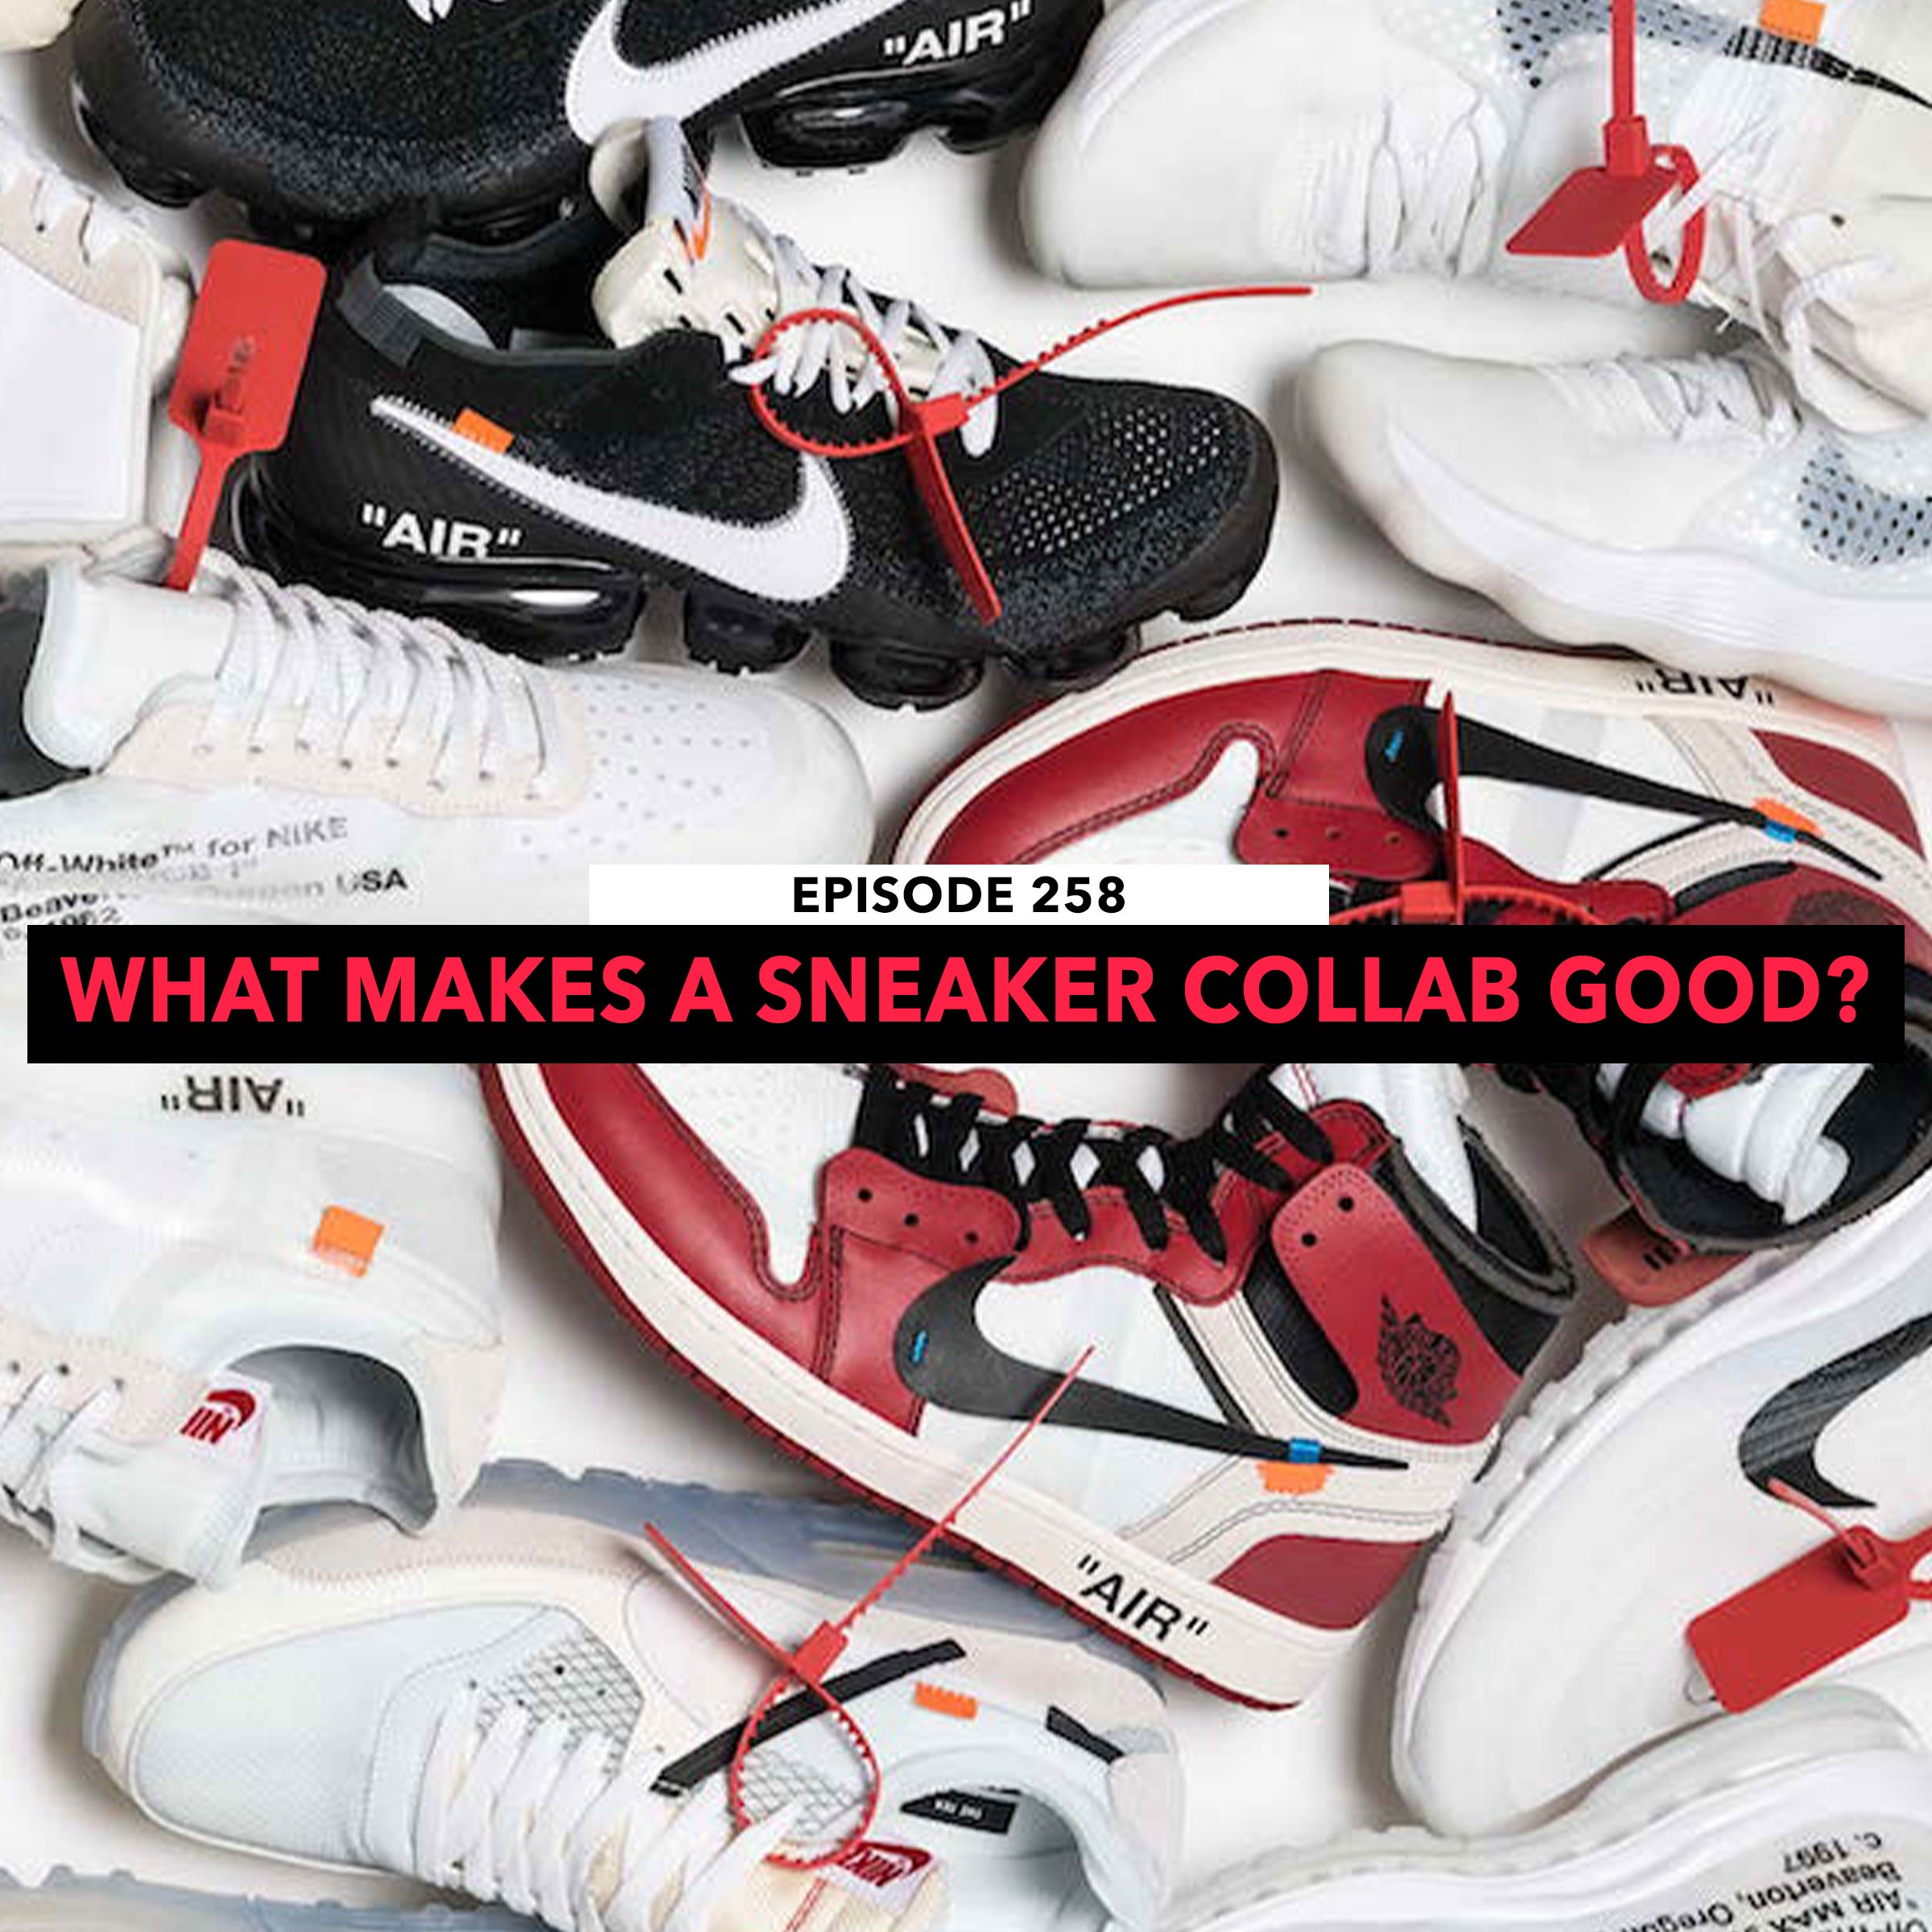 Artwork for podcast Sneaker History Podcast - Sneakers, Sneaker Culture and the Business of Footwear